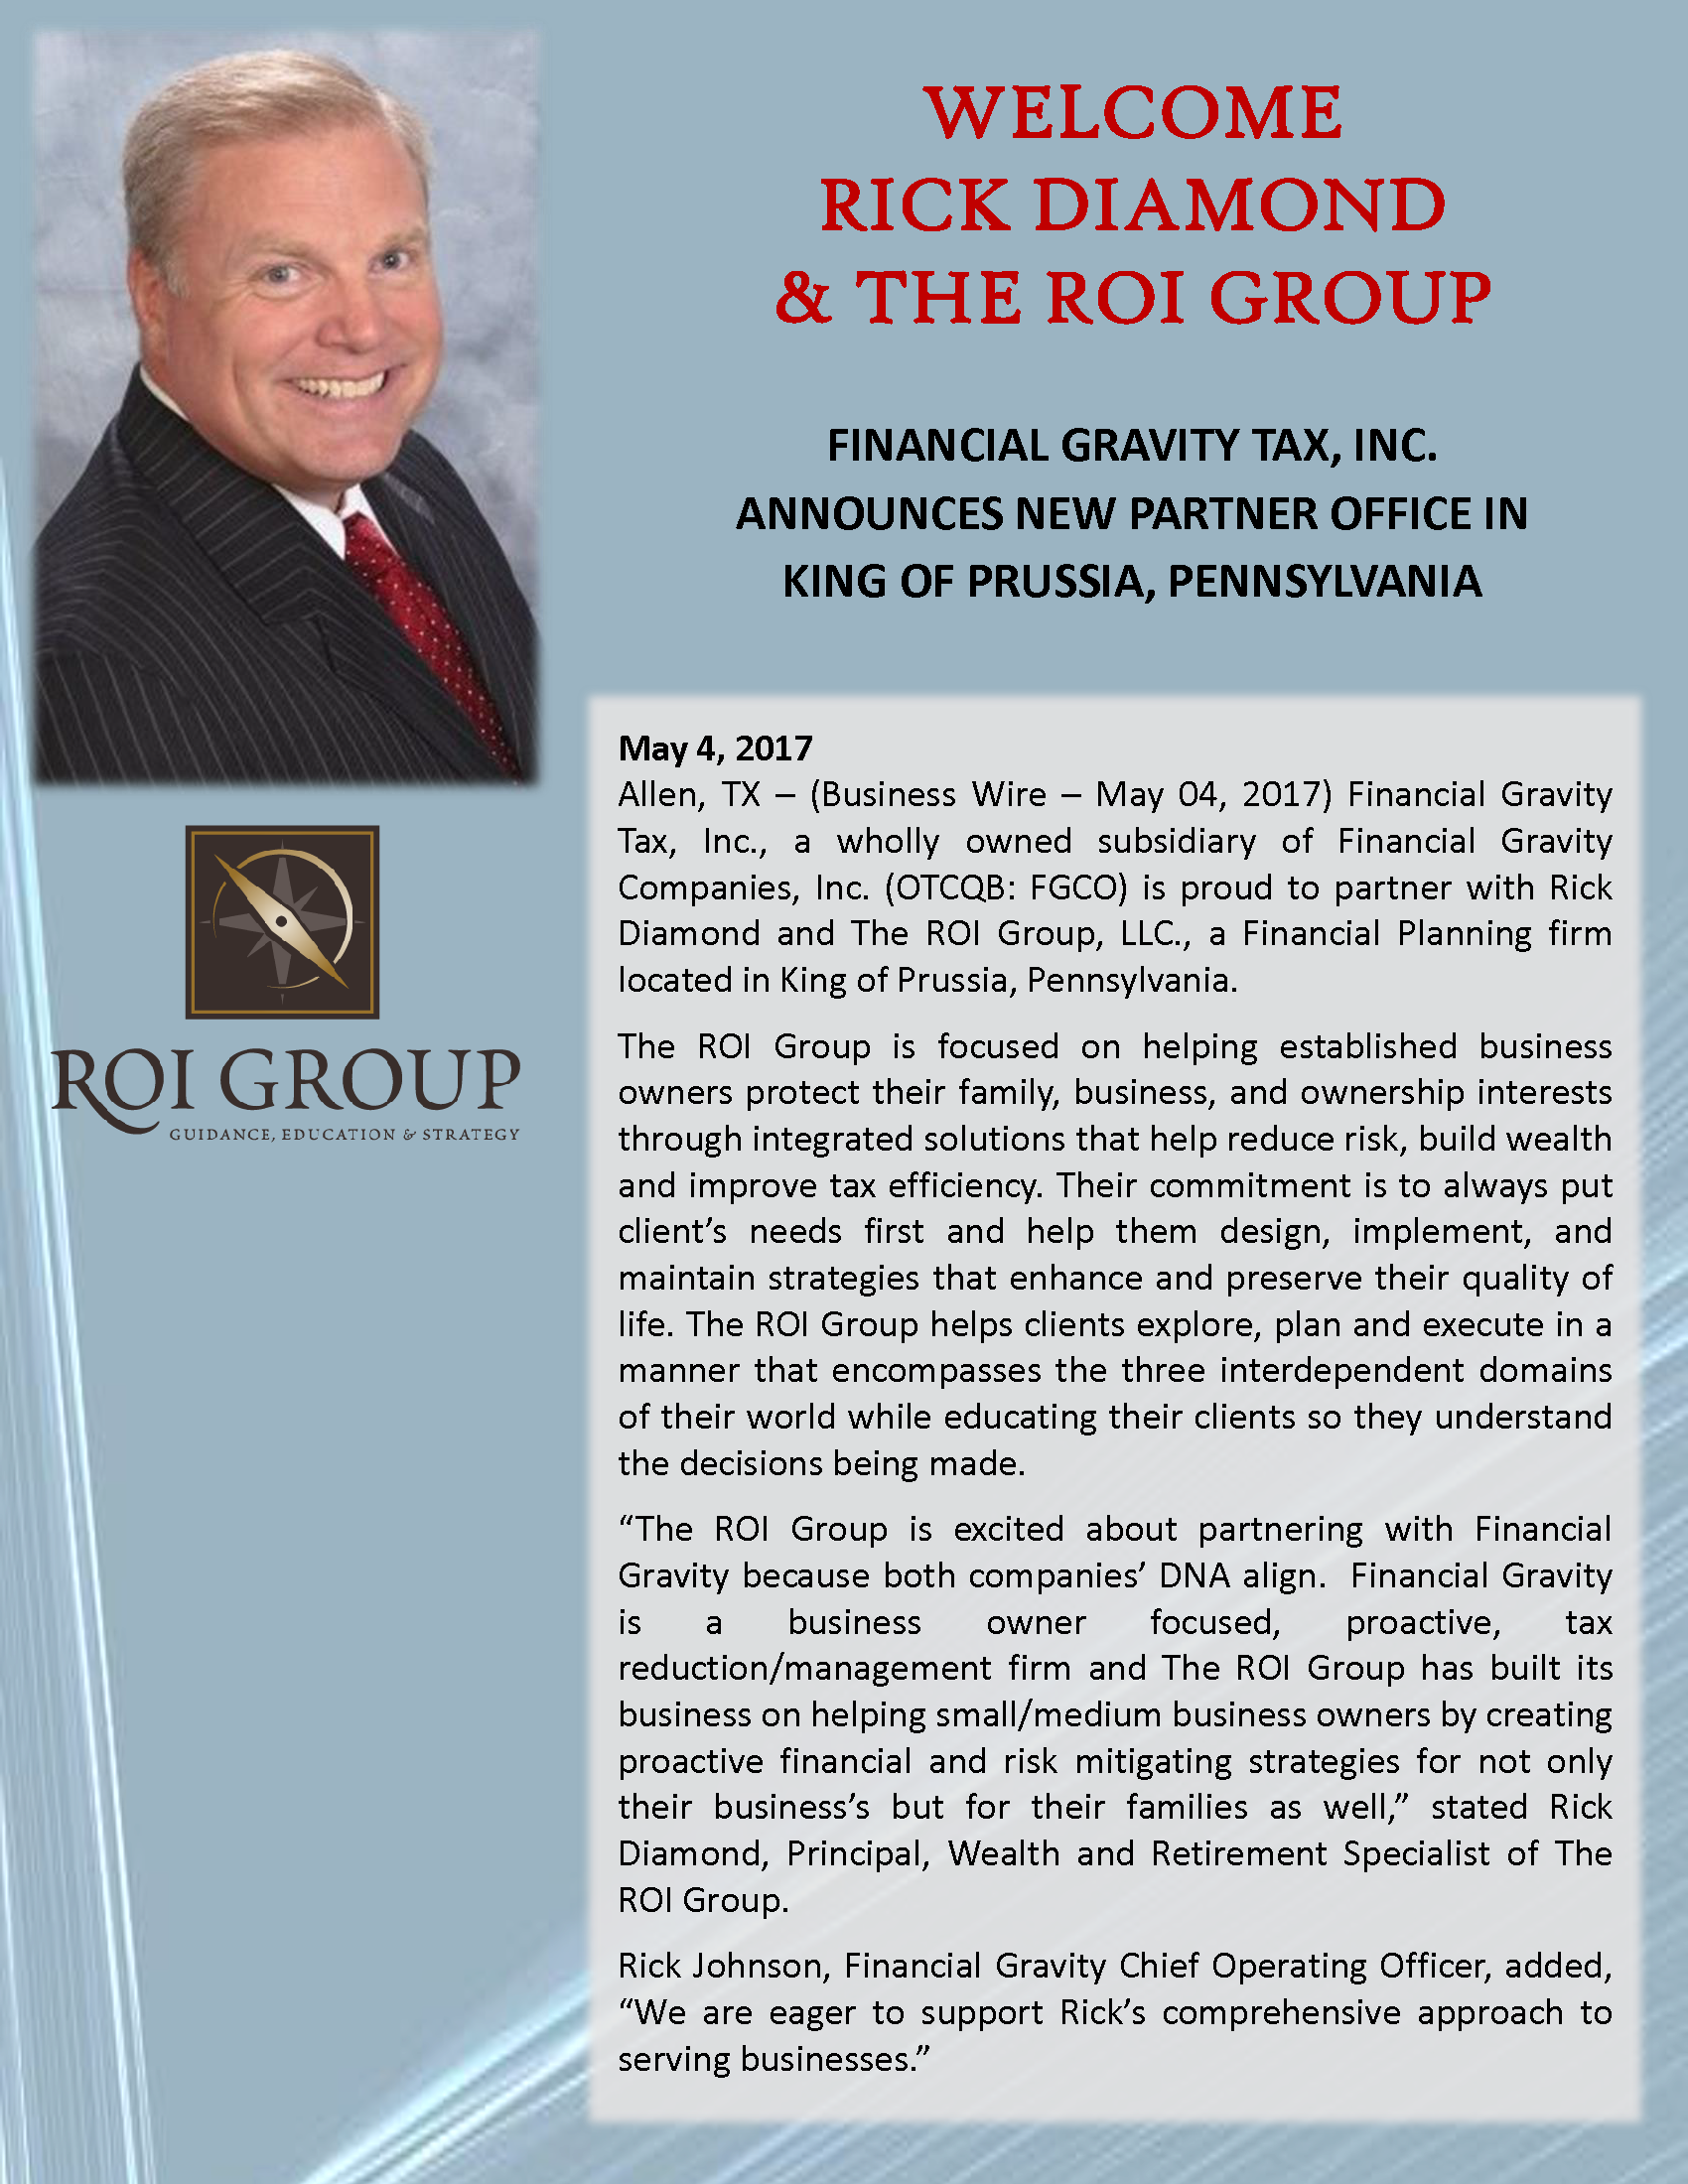 Financial Gravity Welcomes Rick Diamond & The ROI Group, LLC